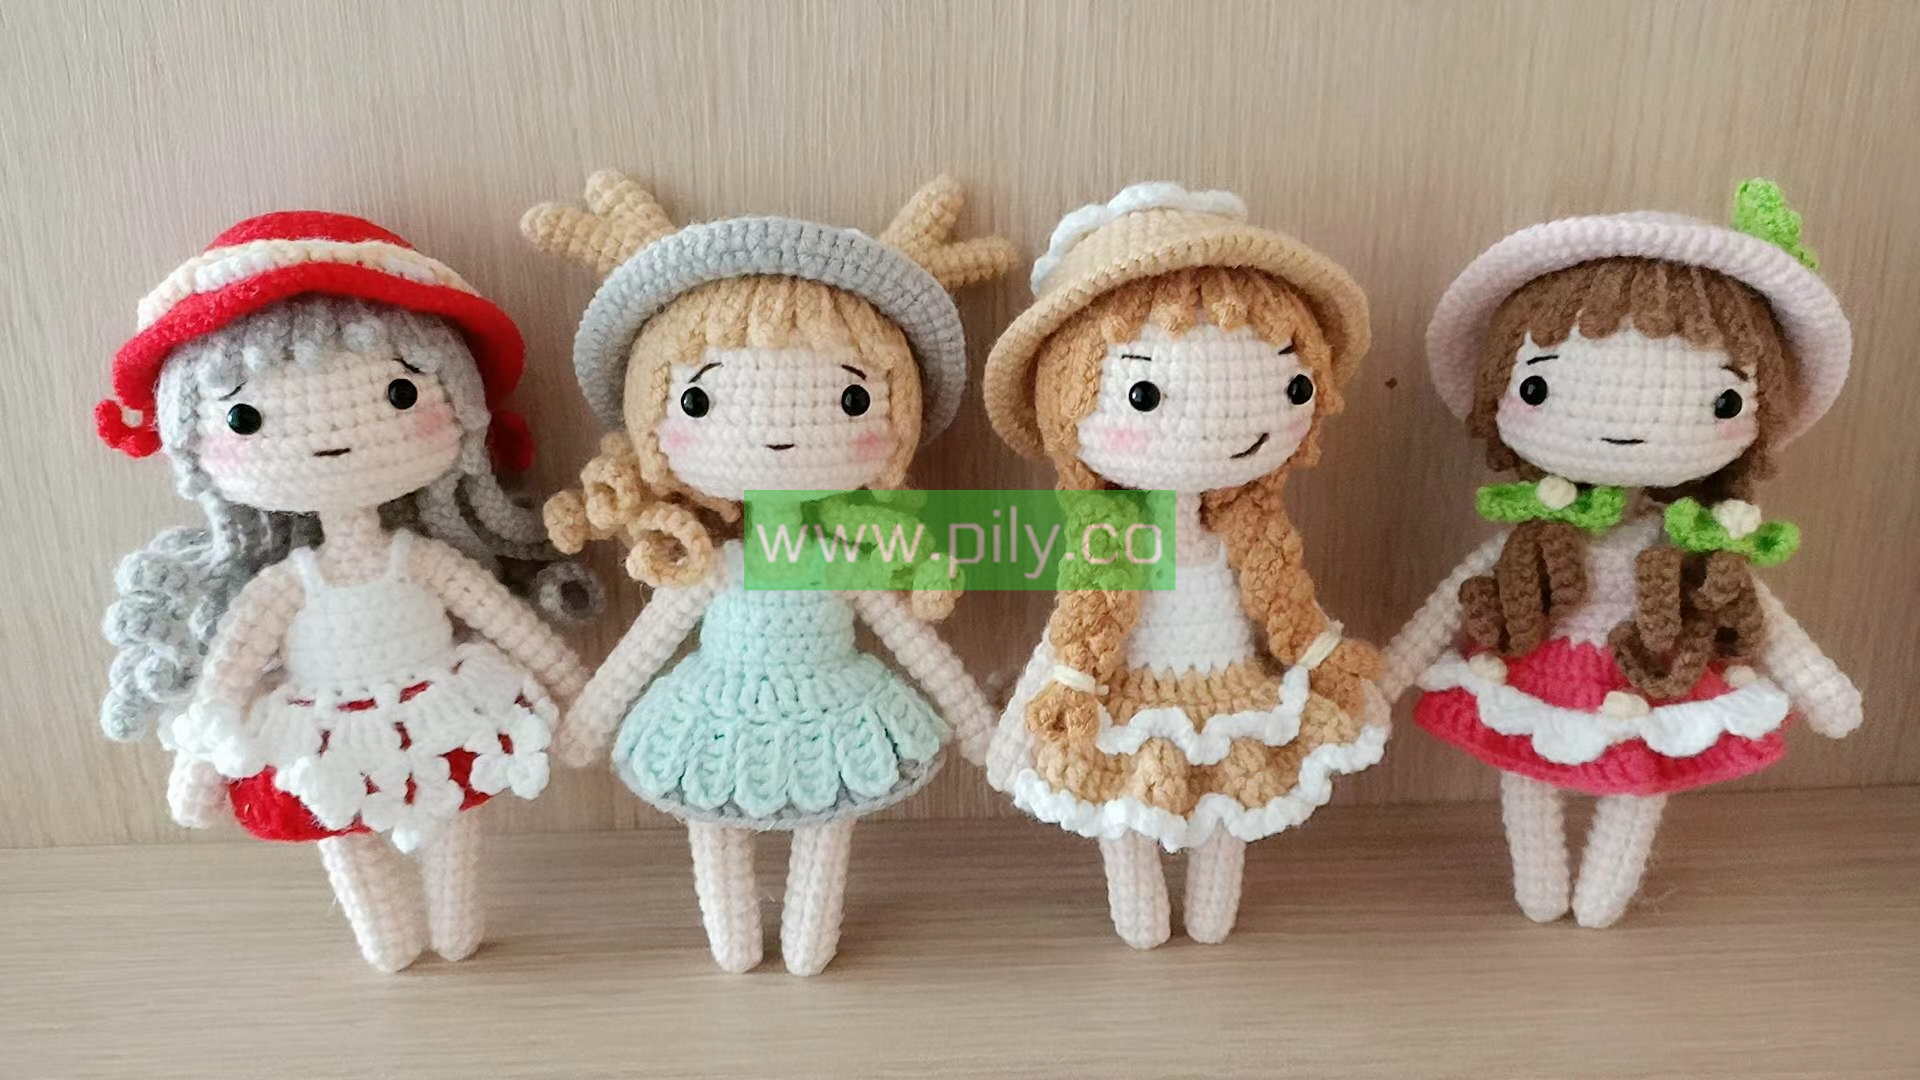 the different crochet patterns